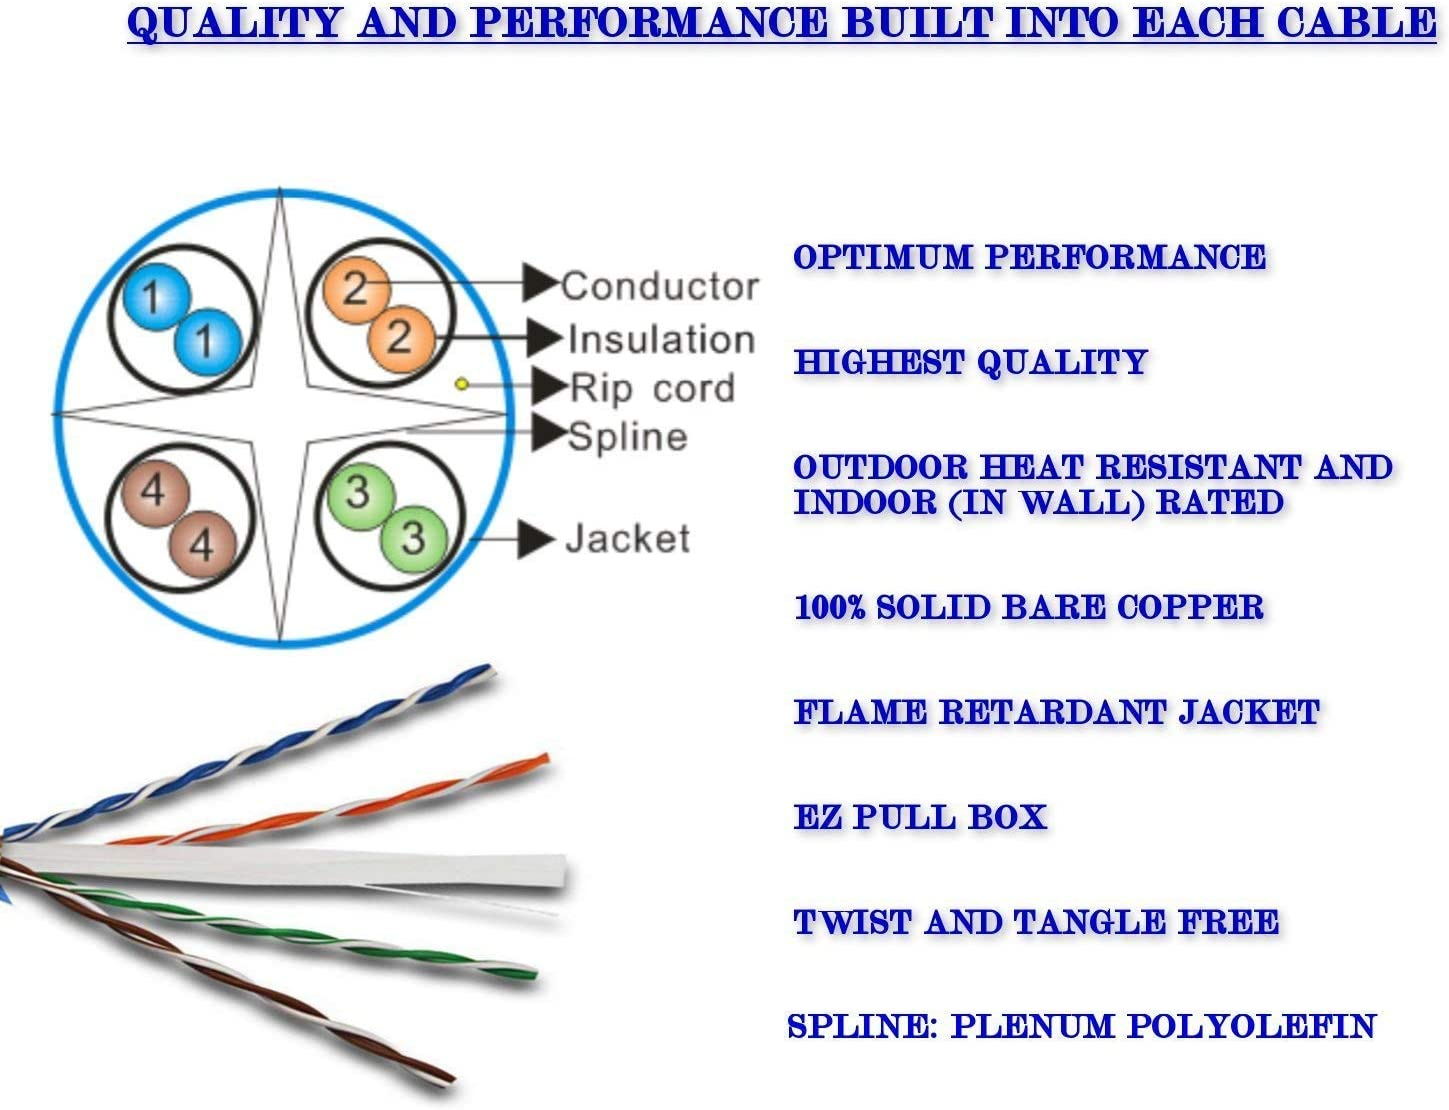 Black Cat6 Bulk Cable 1000ft Pure Copper Solid 23AWG Outdoor//Indoor Heat Resistant Riser Rated CMR 550Mhz